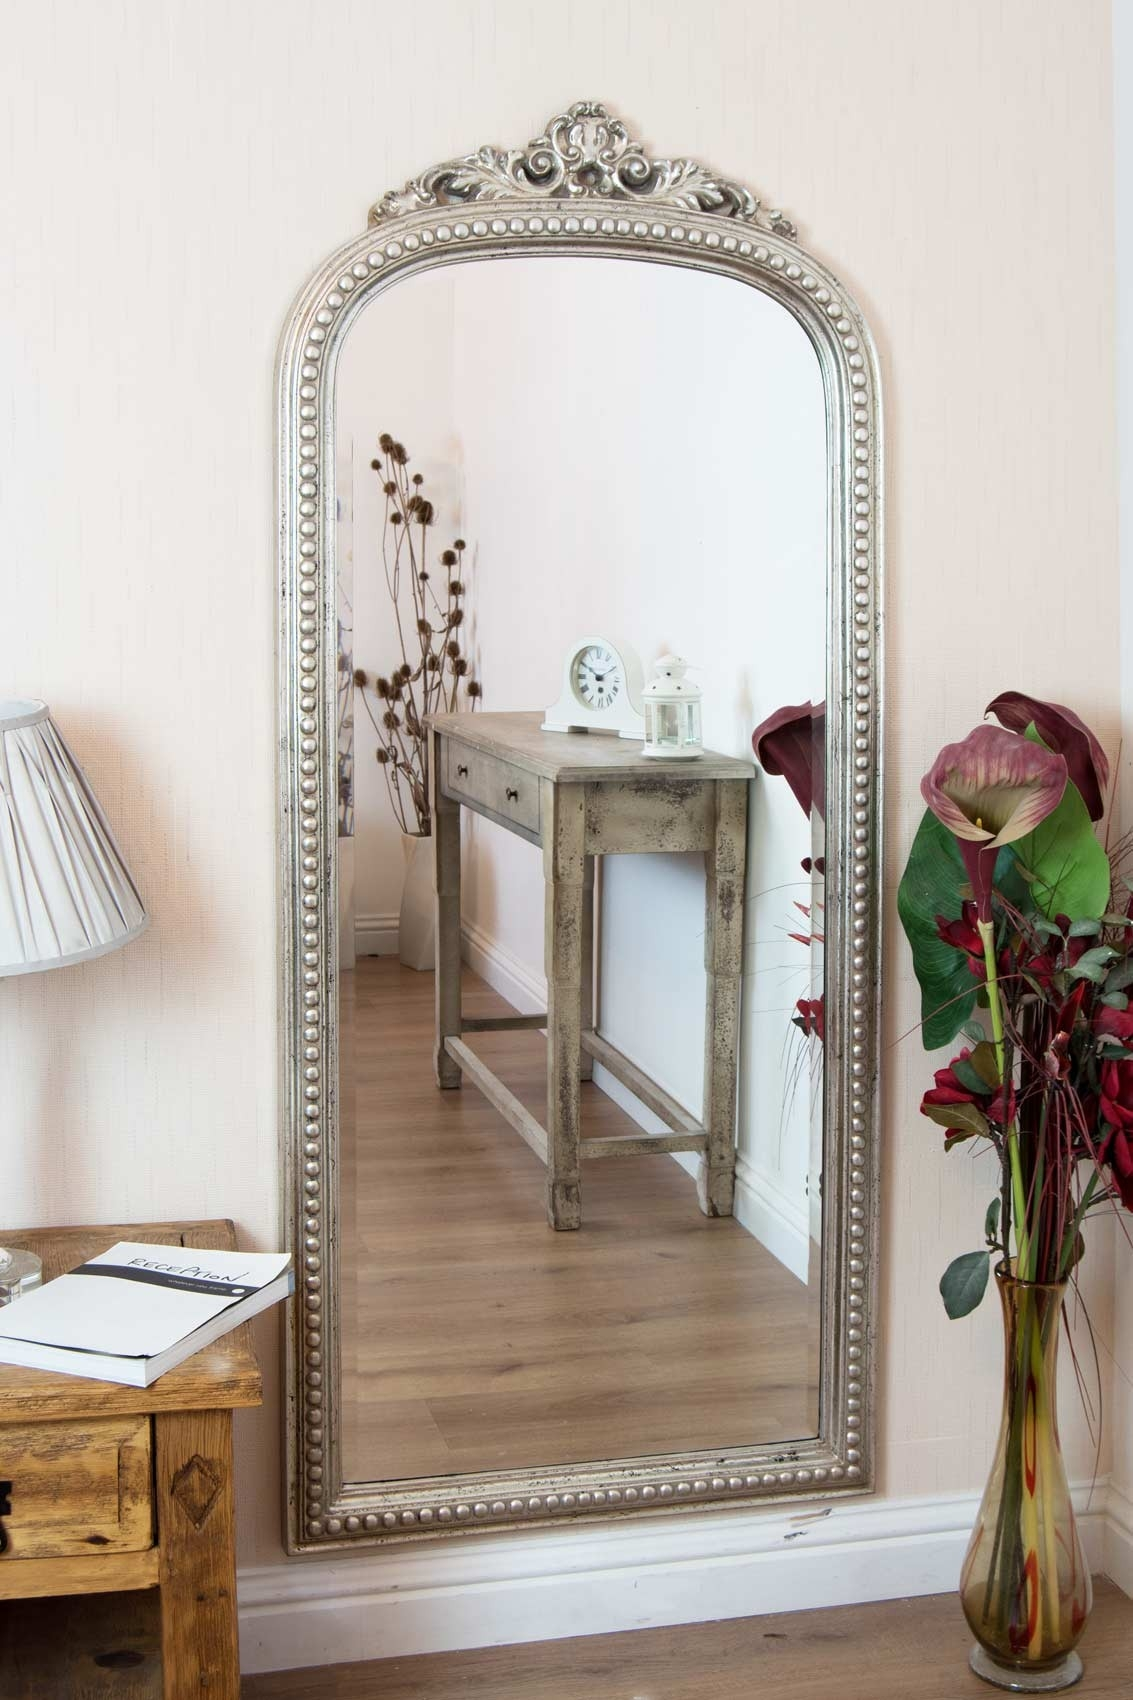 Large Silver Ornate Antique Arched Top Shab Chic Wall Mirror Inside Shabby Chic Large Mirrors (View 9 of 15)